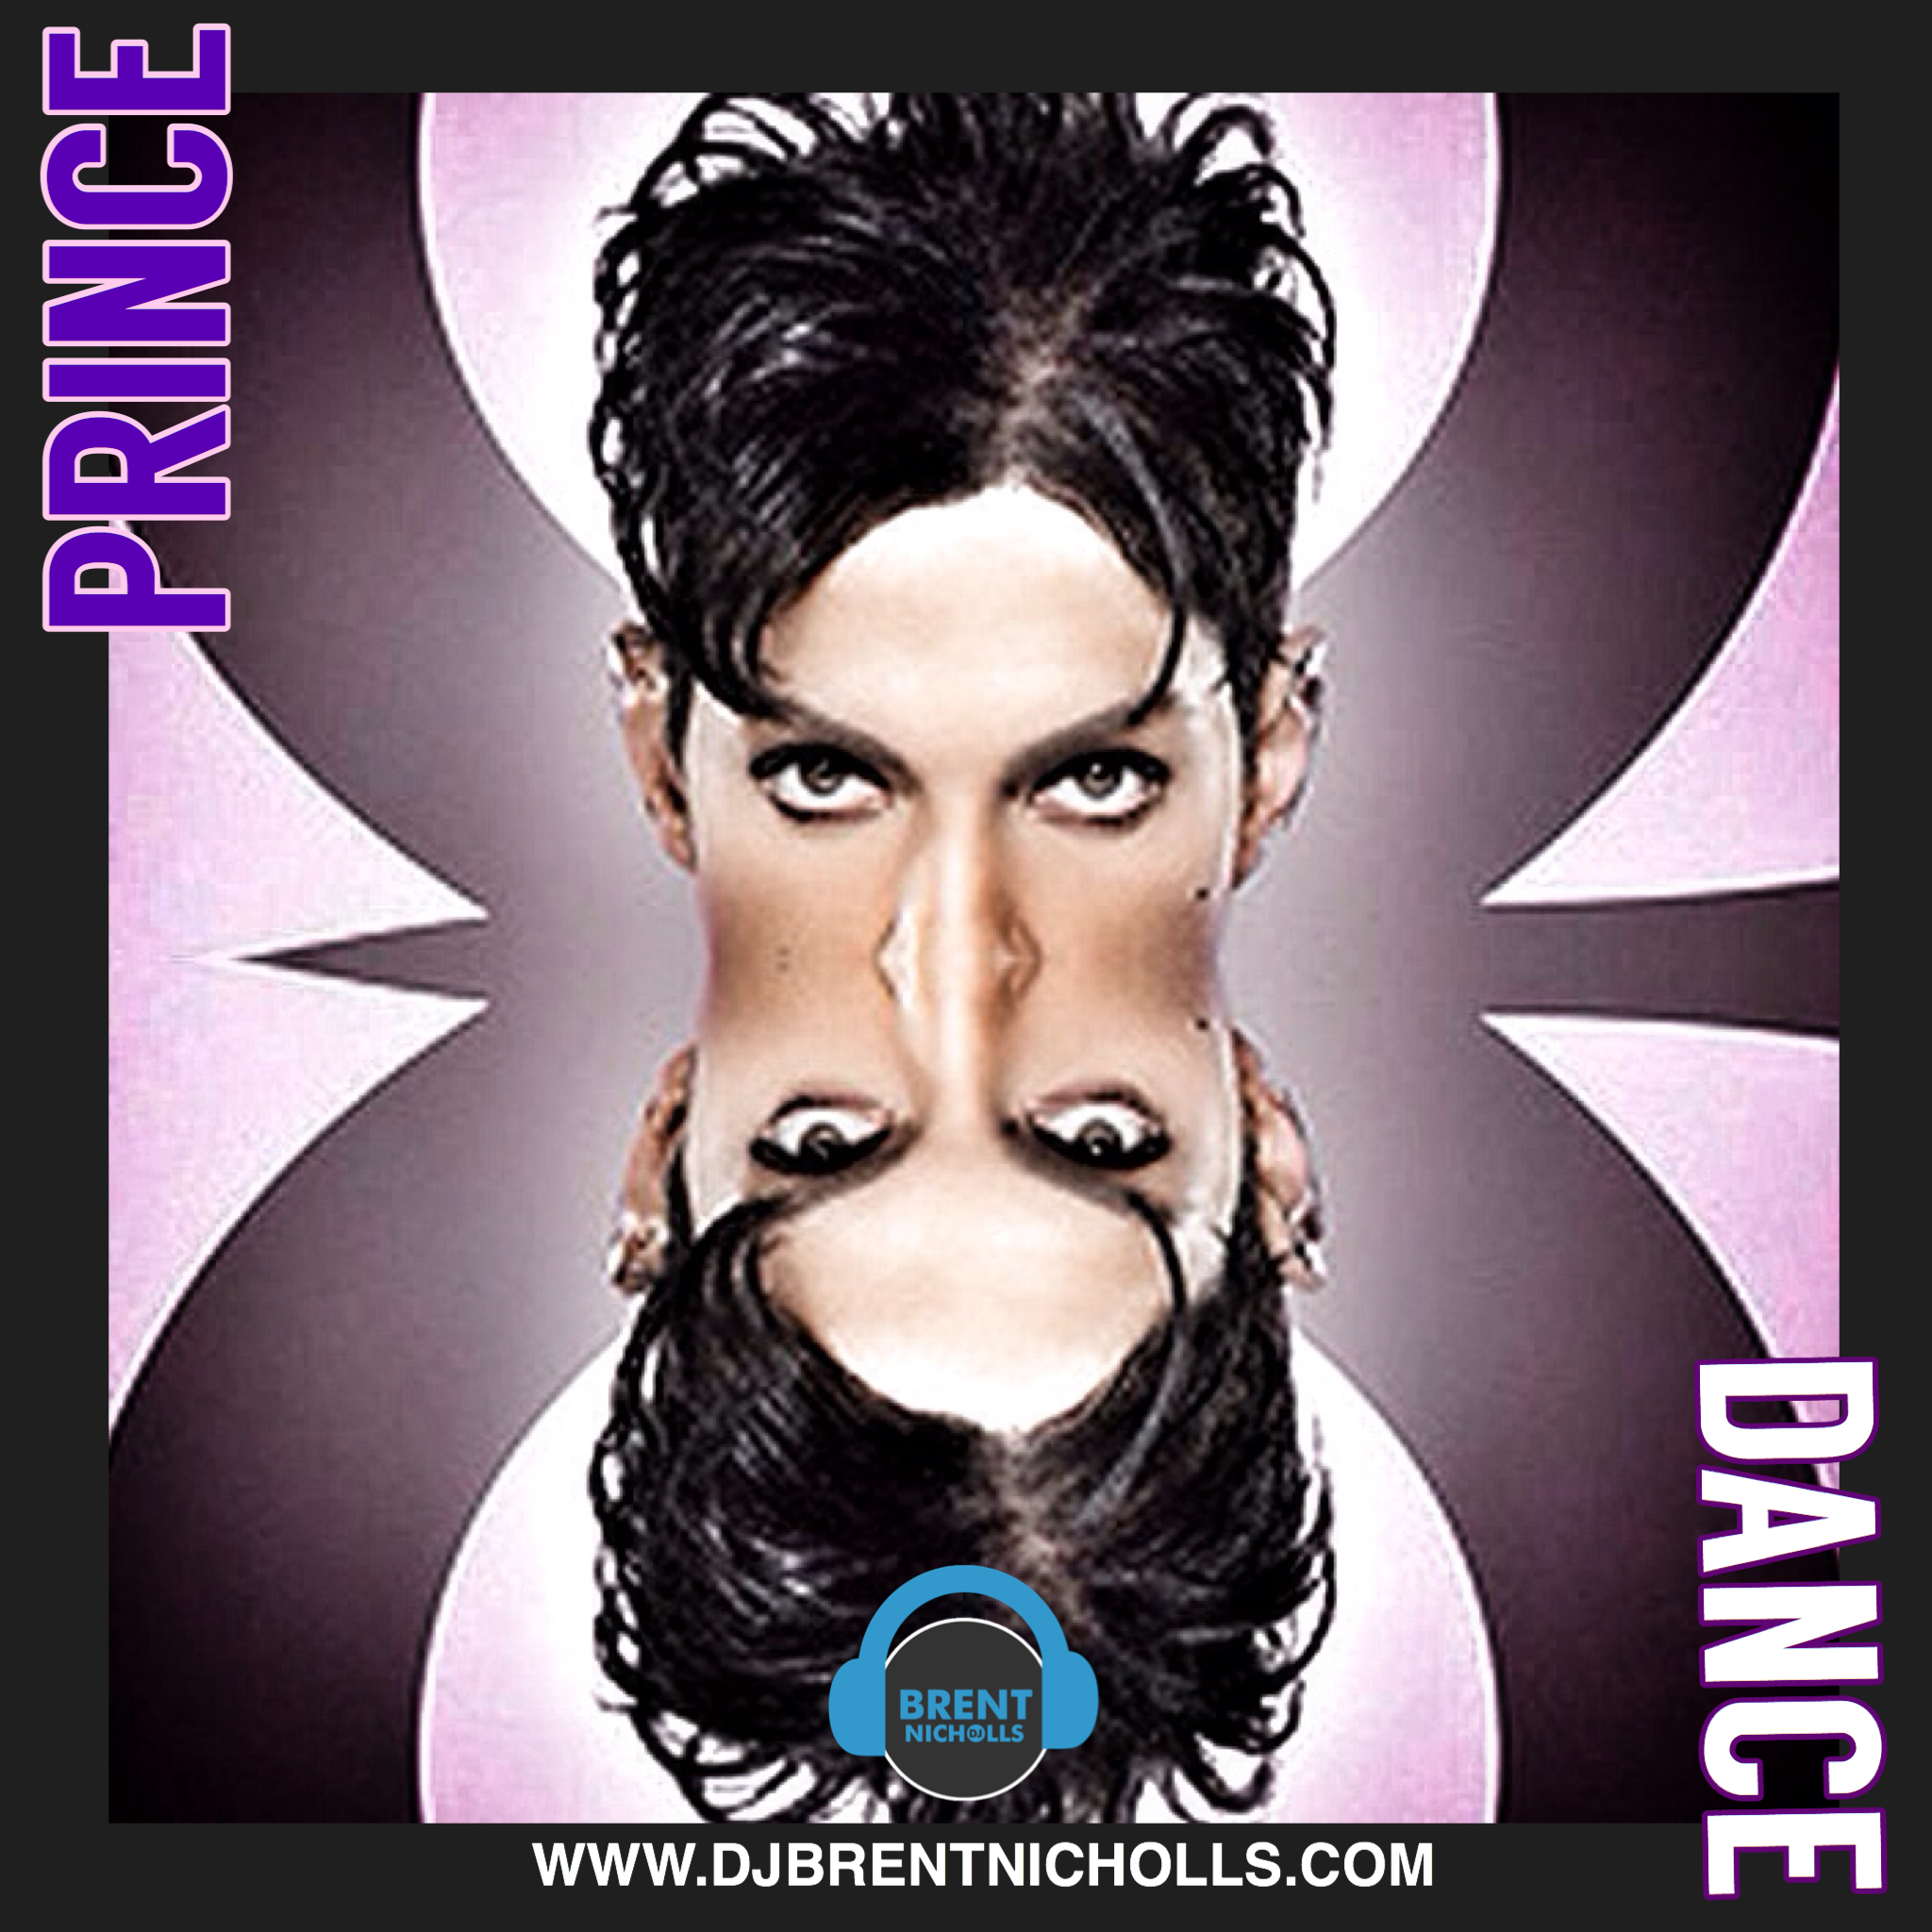 SPECIALIST PODCAST: PRINCE DANCE